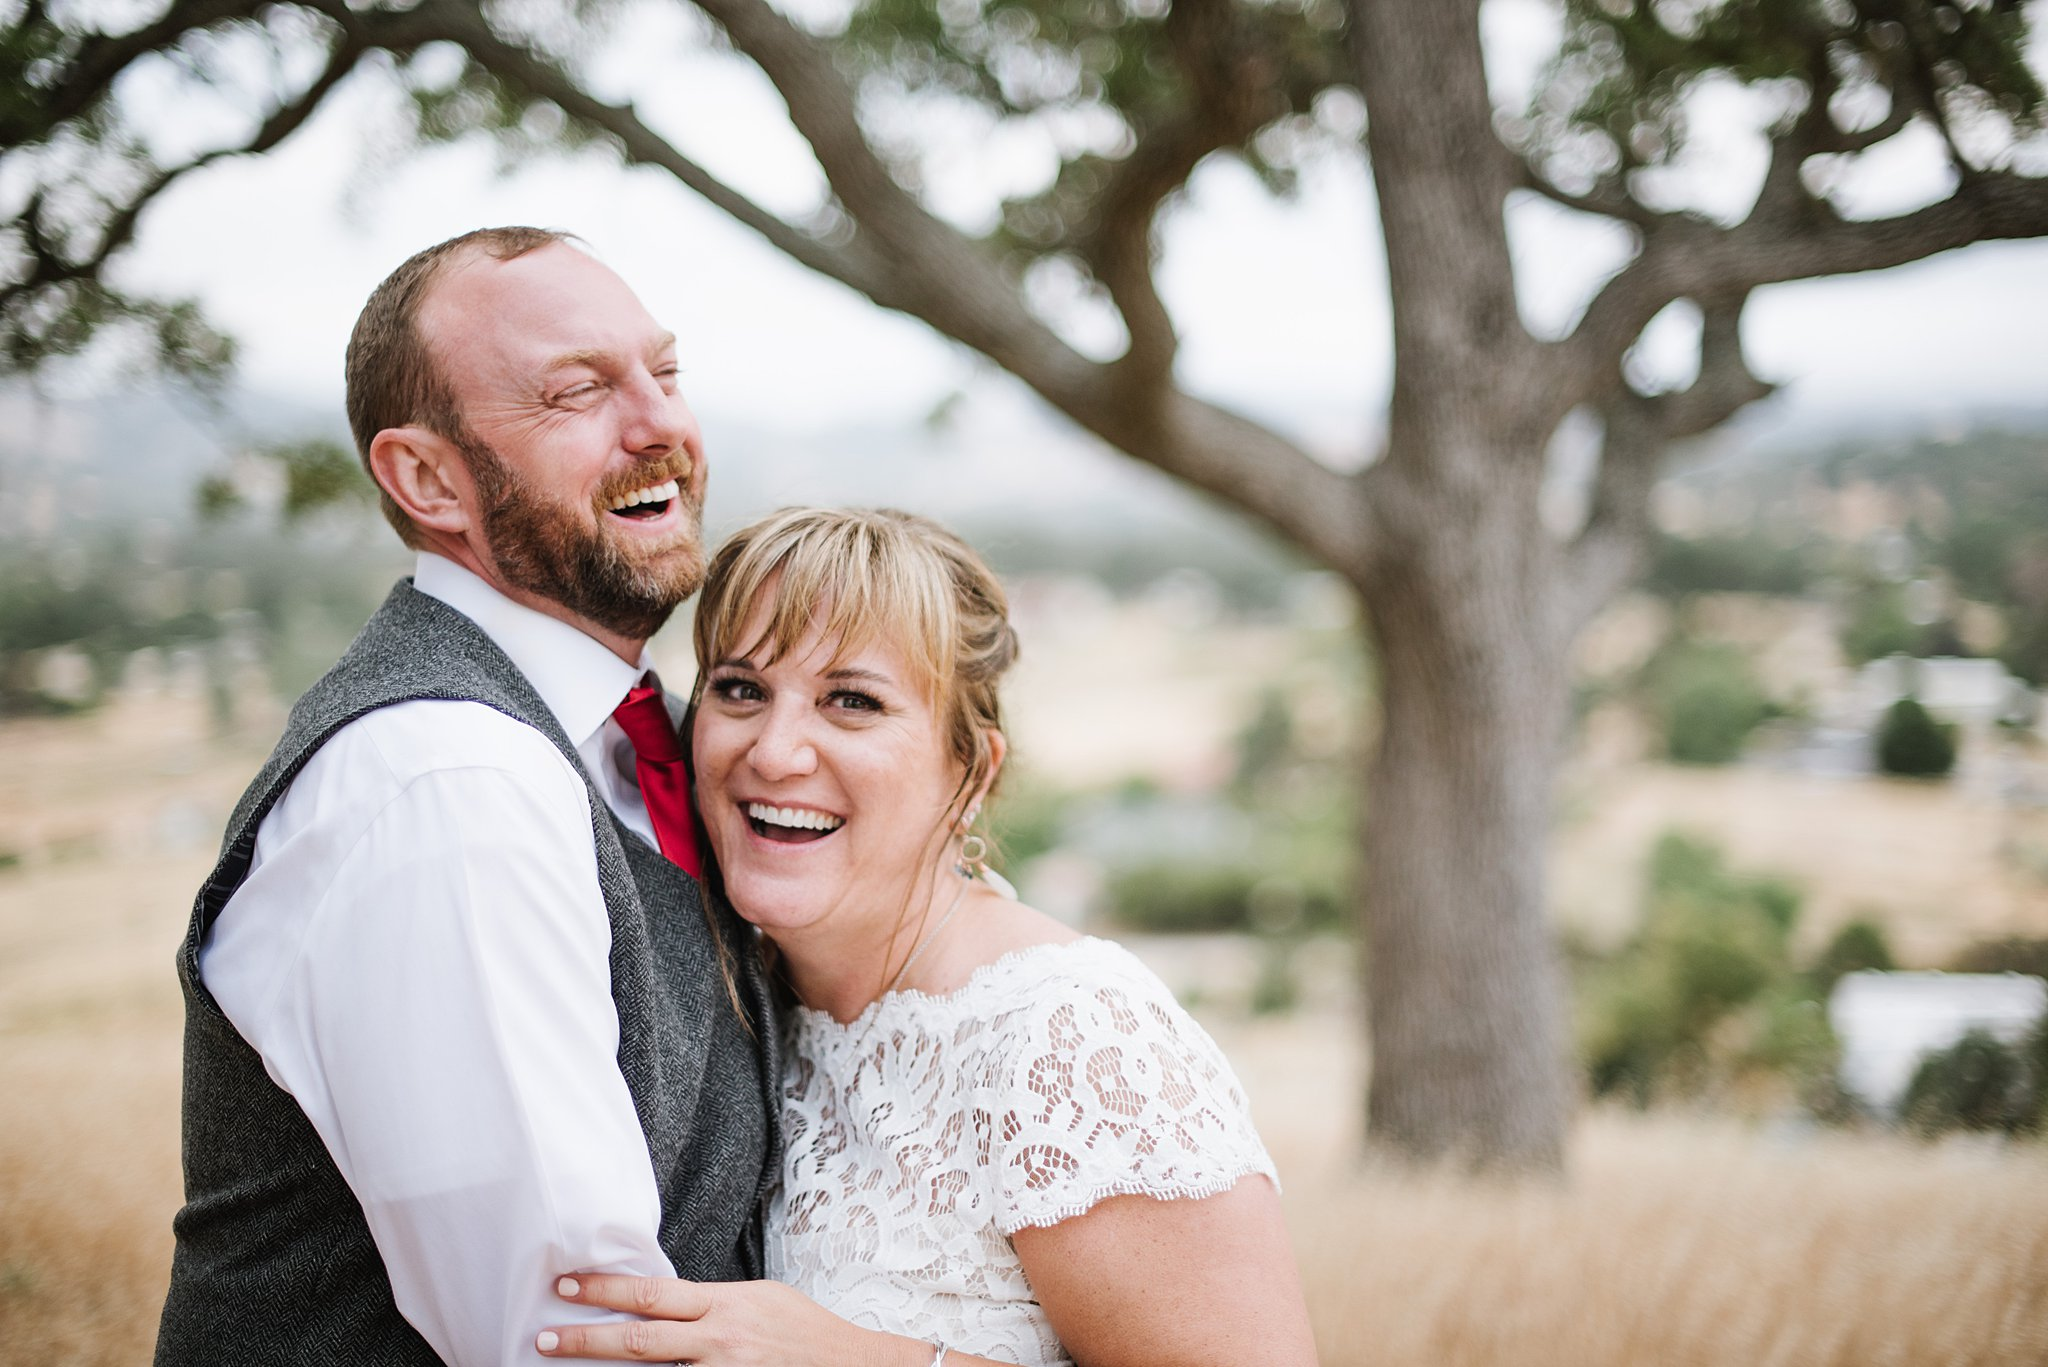 The Grace Maralyn Estate & Gardens Summer Wedding in Atascadero, California